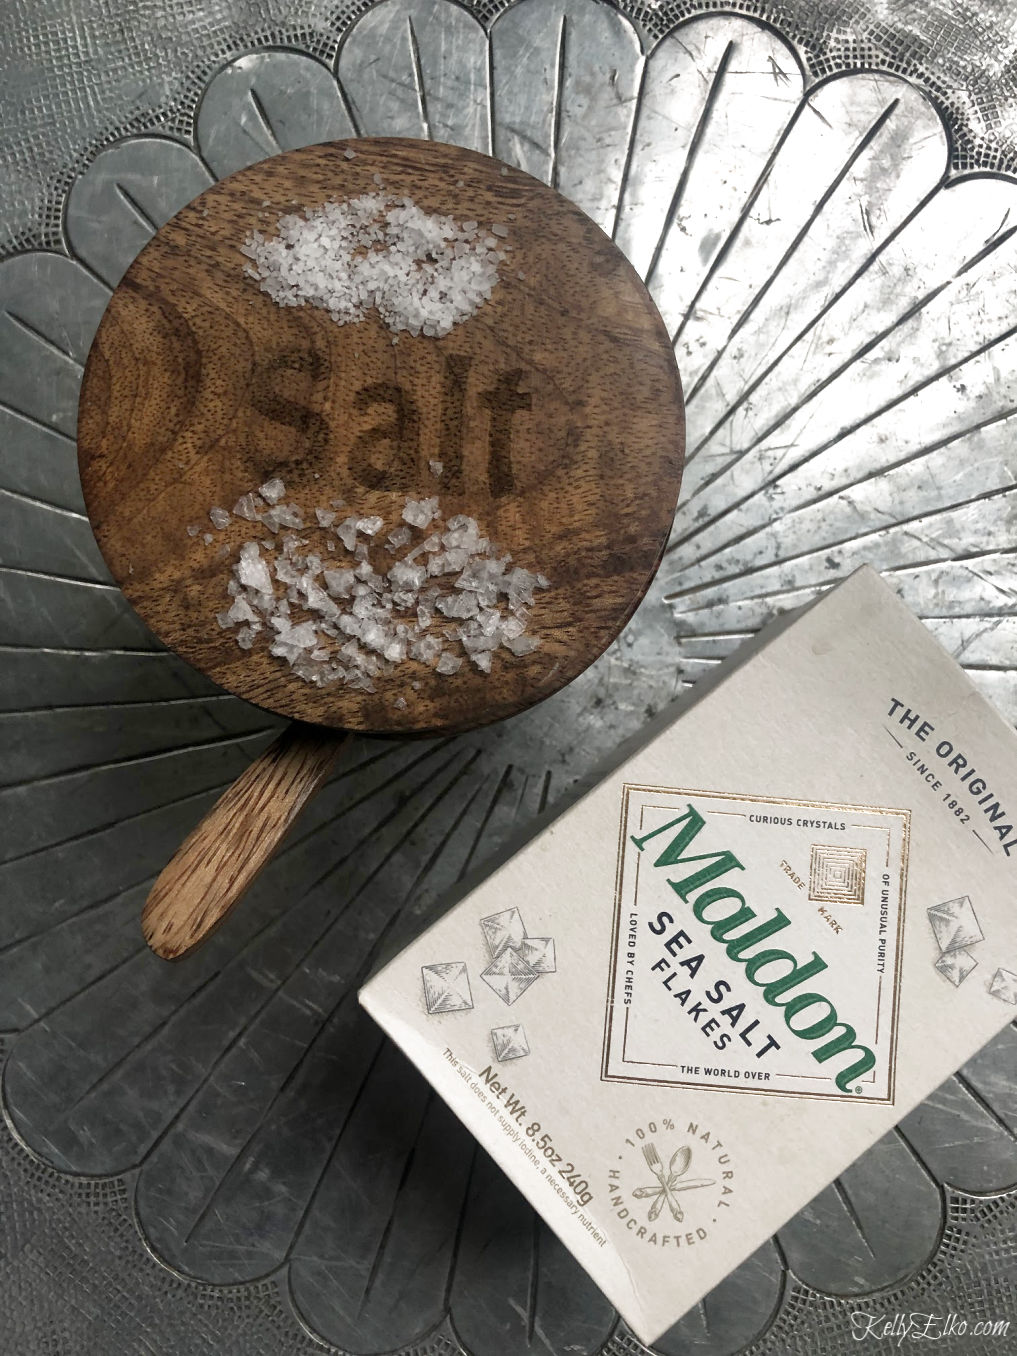 Kelly's Stamp of Approval - Maldon Sea Salt kellyelko.com #salt #seasalt #foodie #kitchenessentials #cook